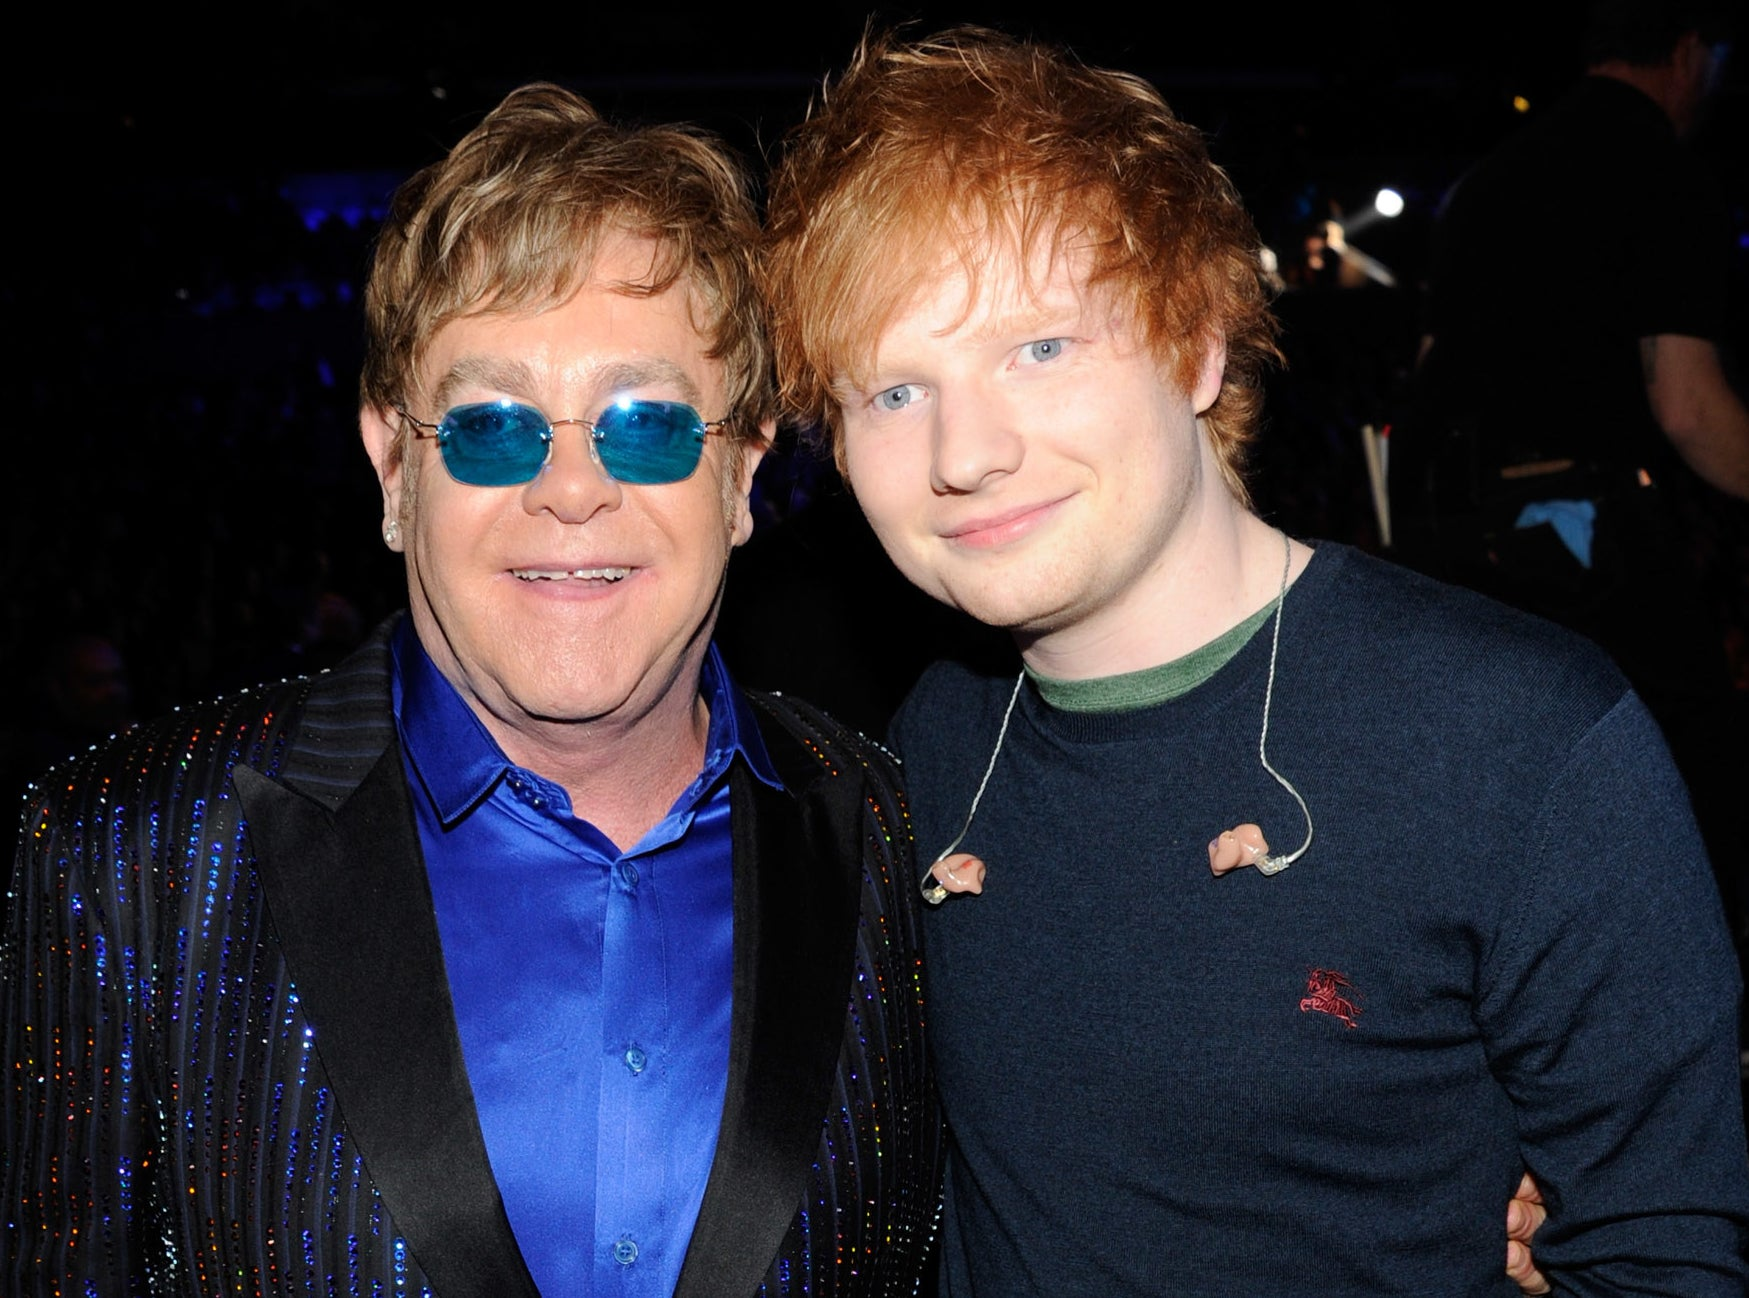 Elton and Ed pose together at a concert